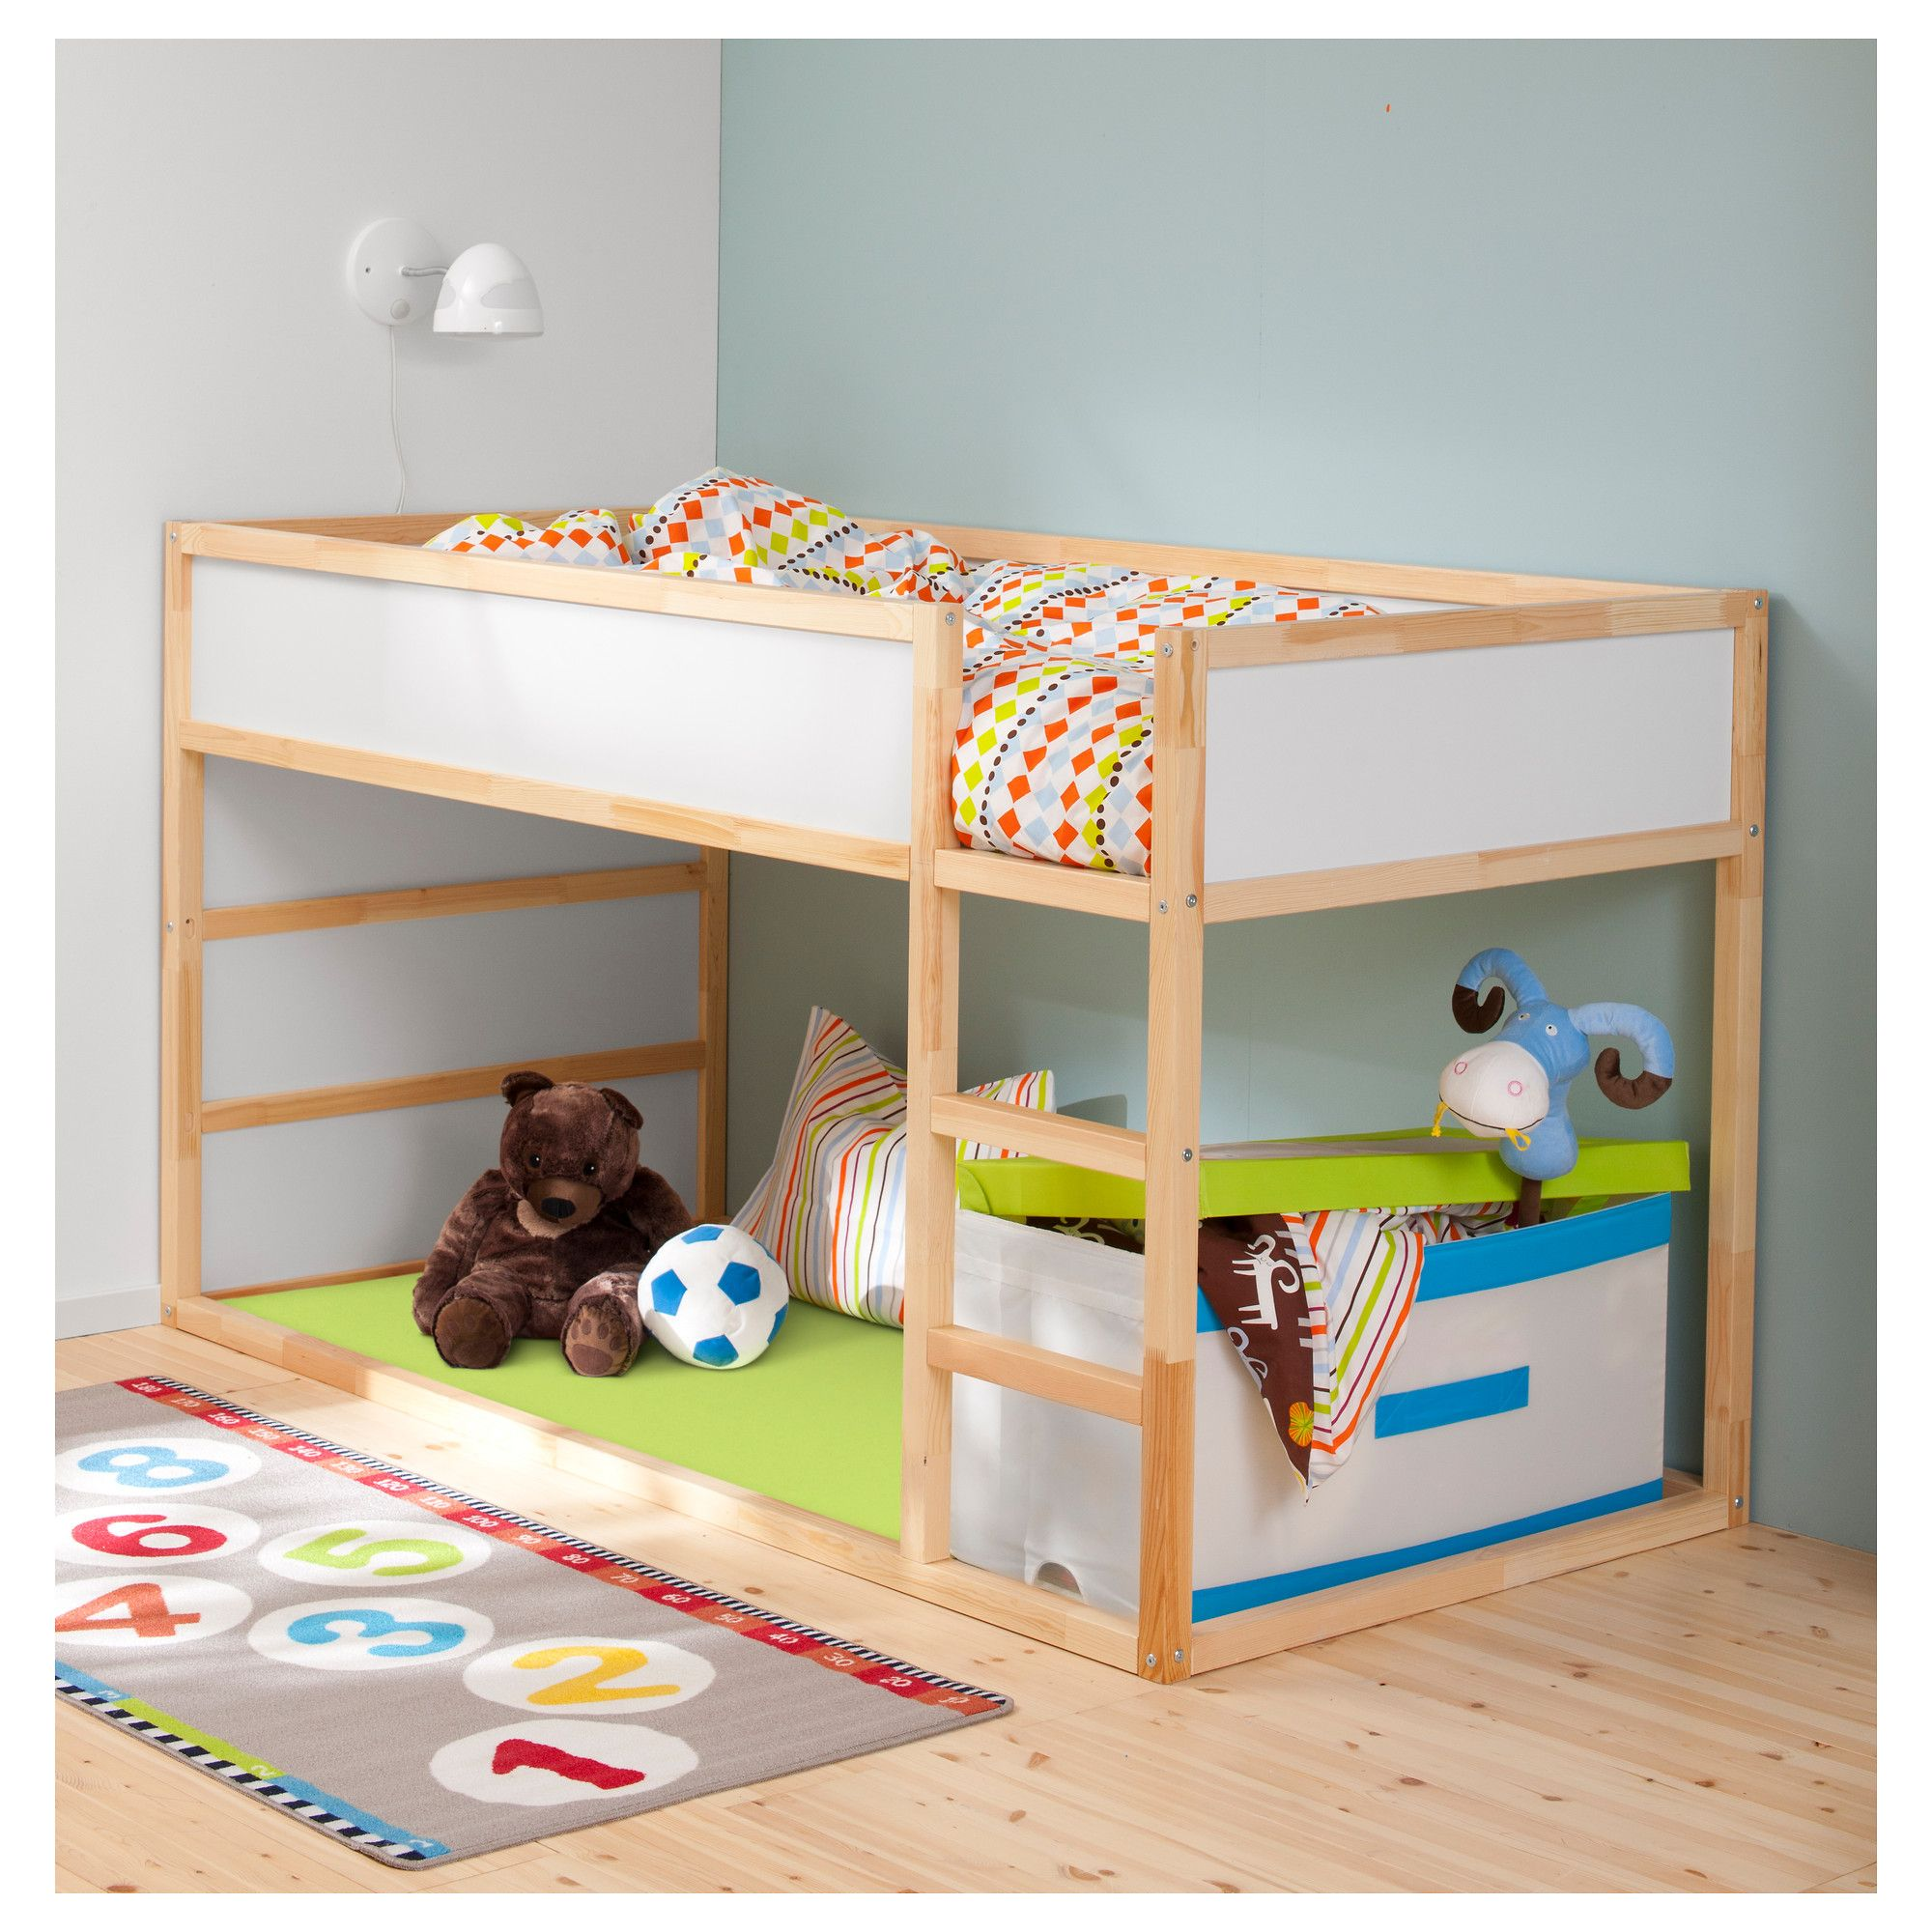 Best Bust Of Ikea Kids Loft Bed A Space Efficient Furniture 640 x 480